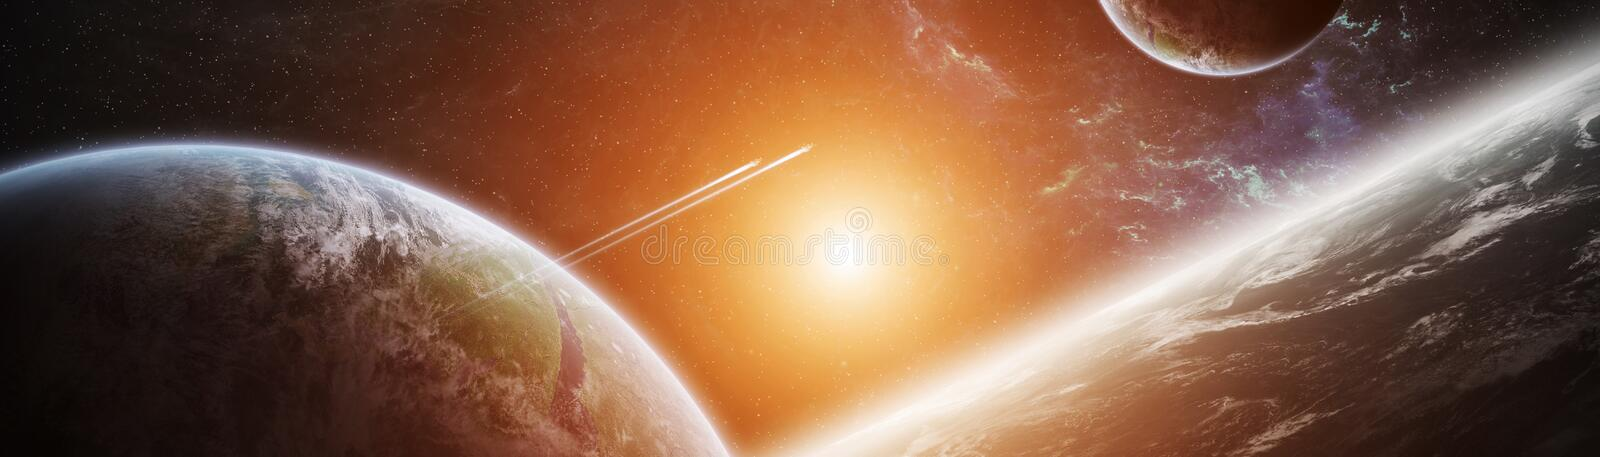 Panoramic view of planets in distant solar system 3D rendering e vector illustration